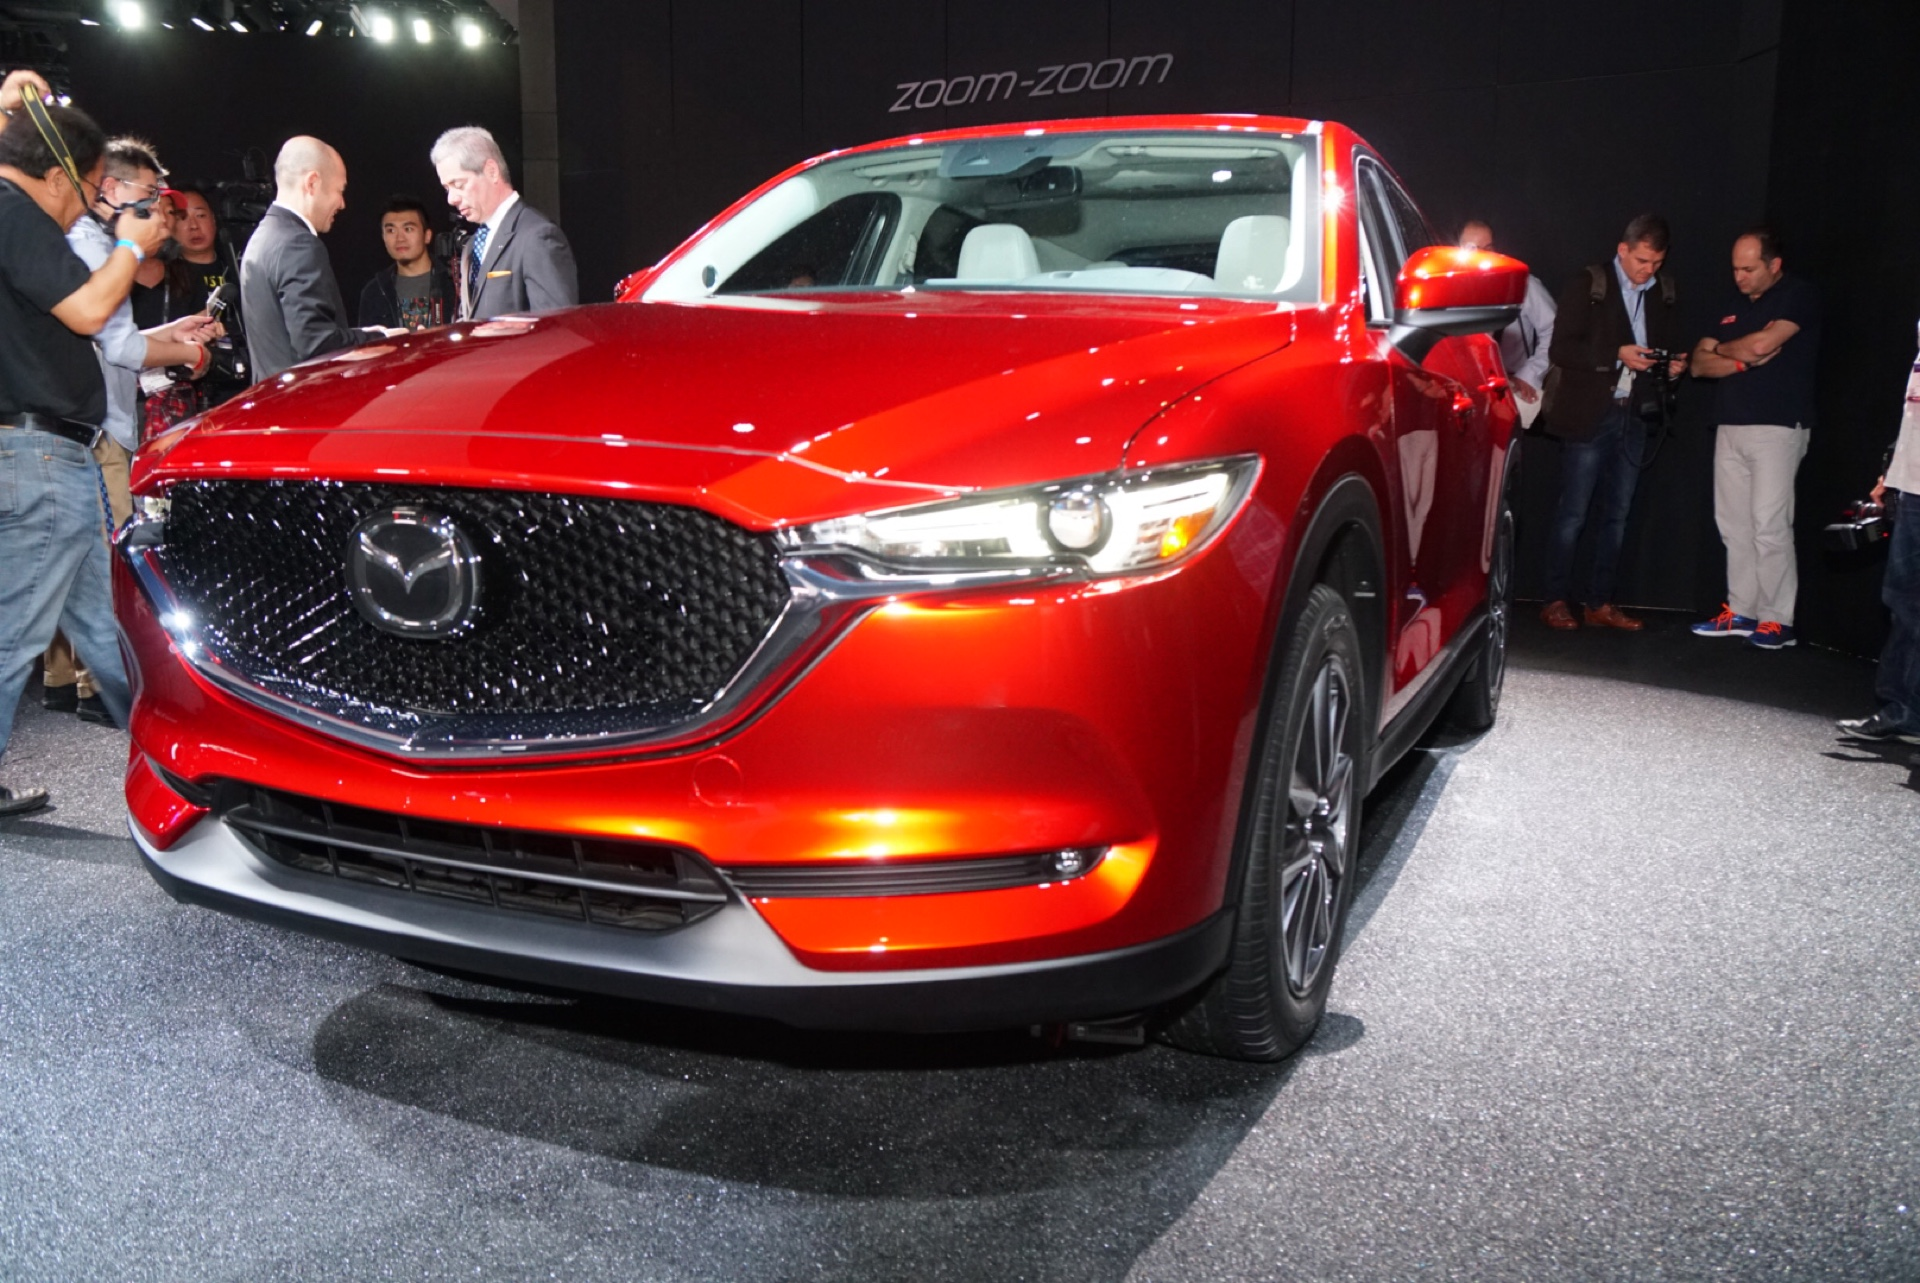 mazda diesel to arrive fall 2017, it says, in new cx-5 crossover